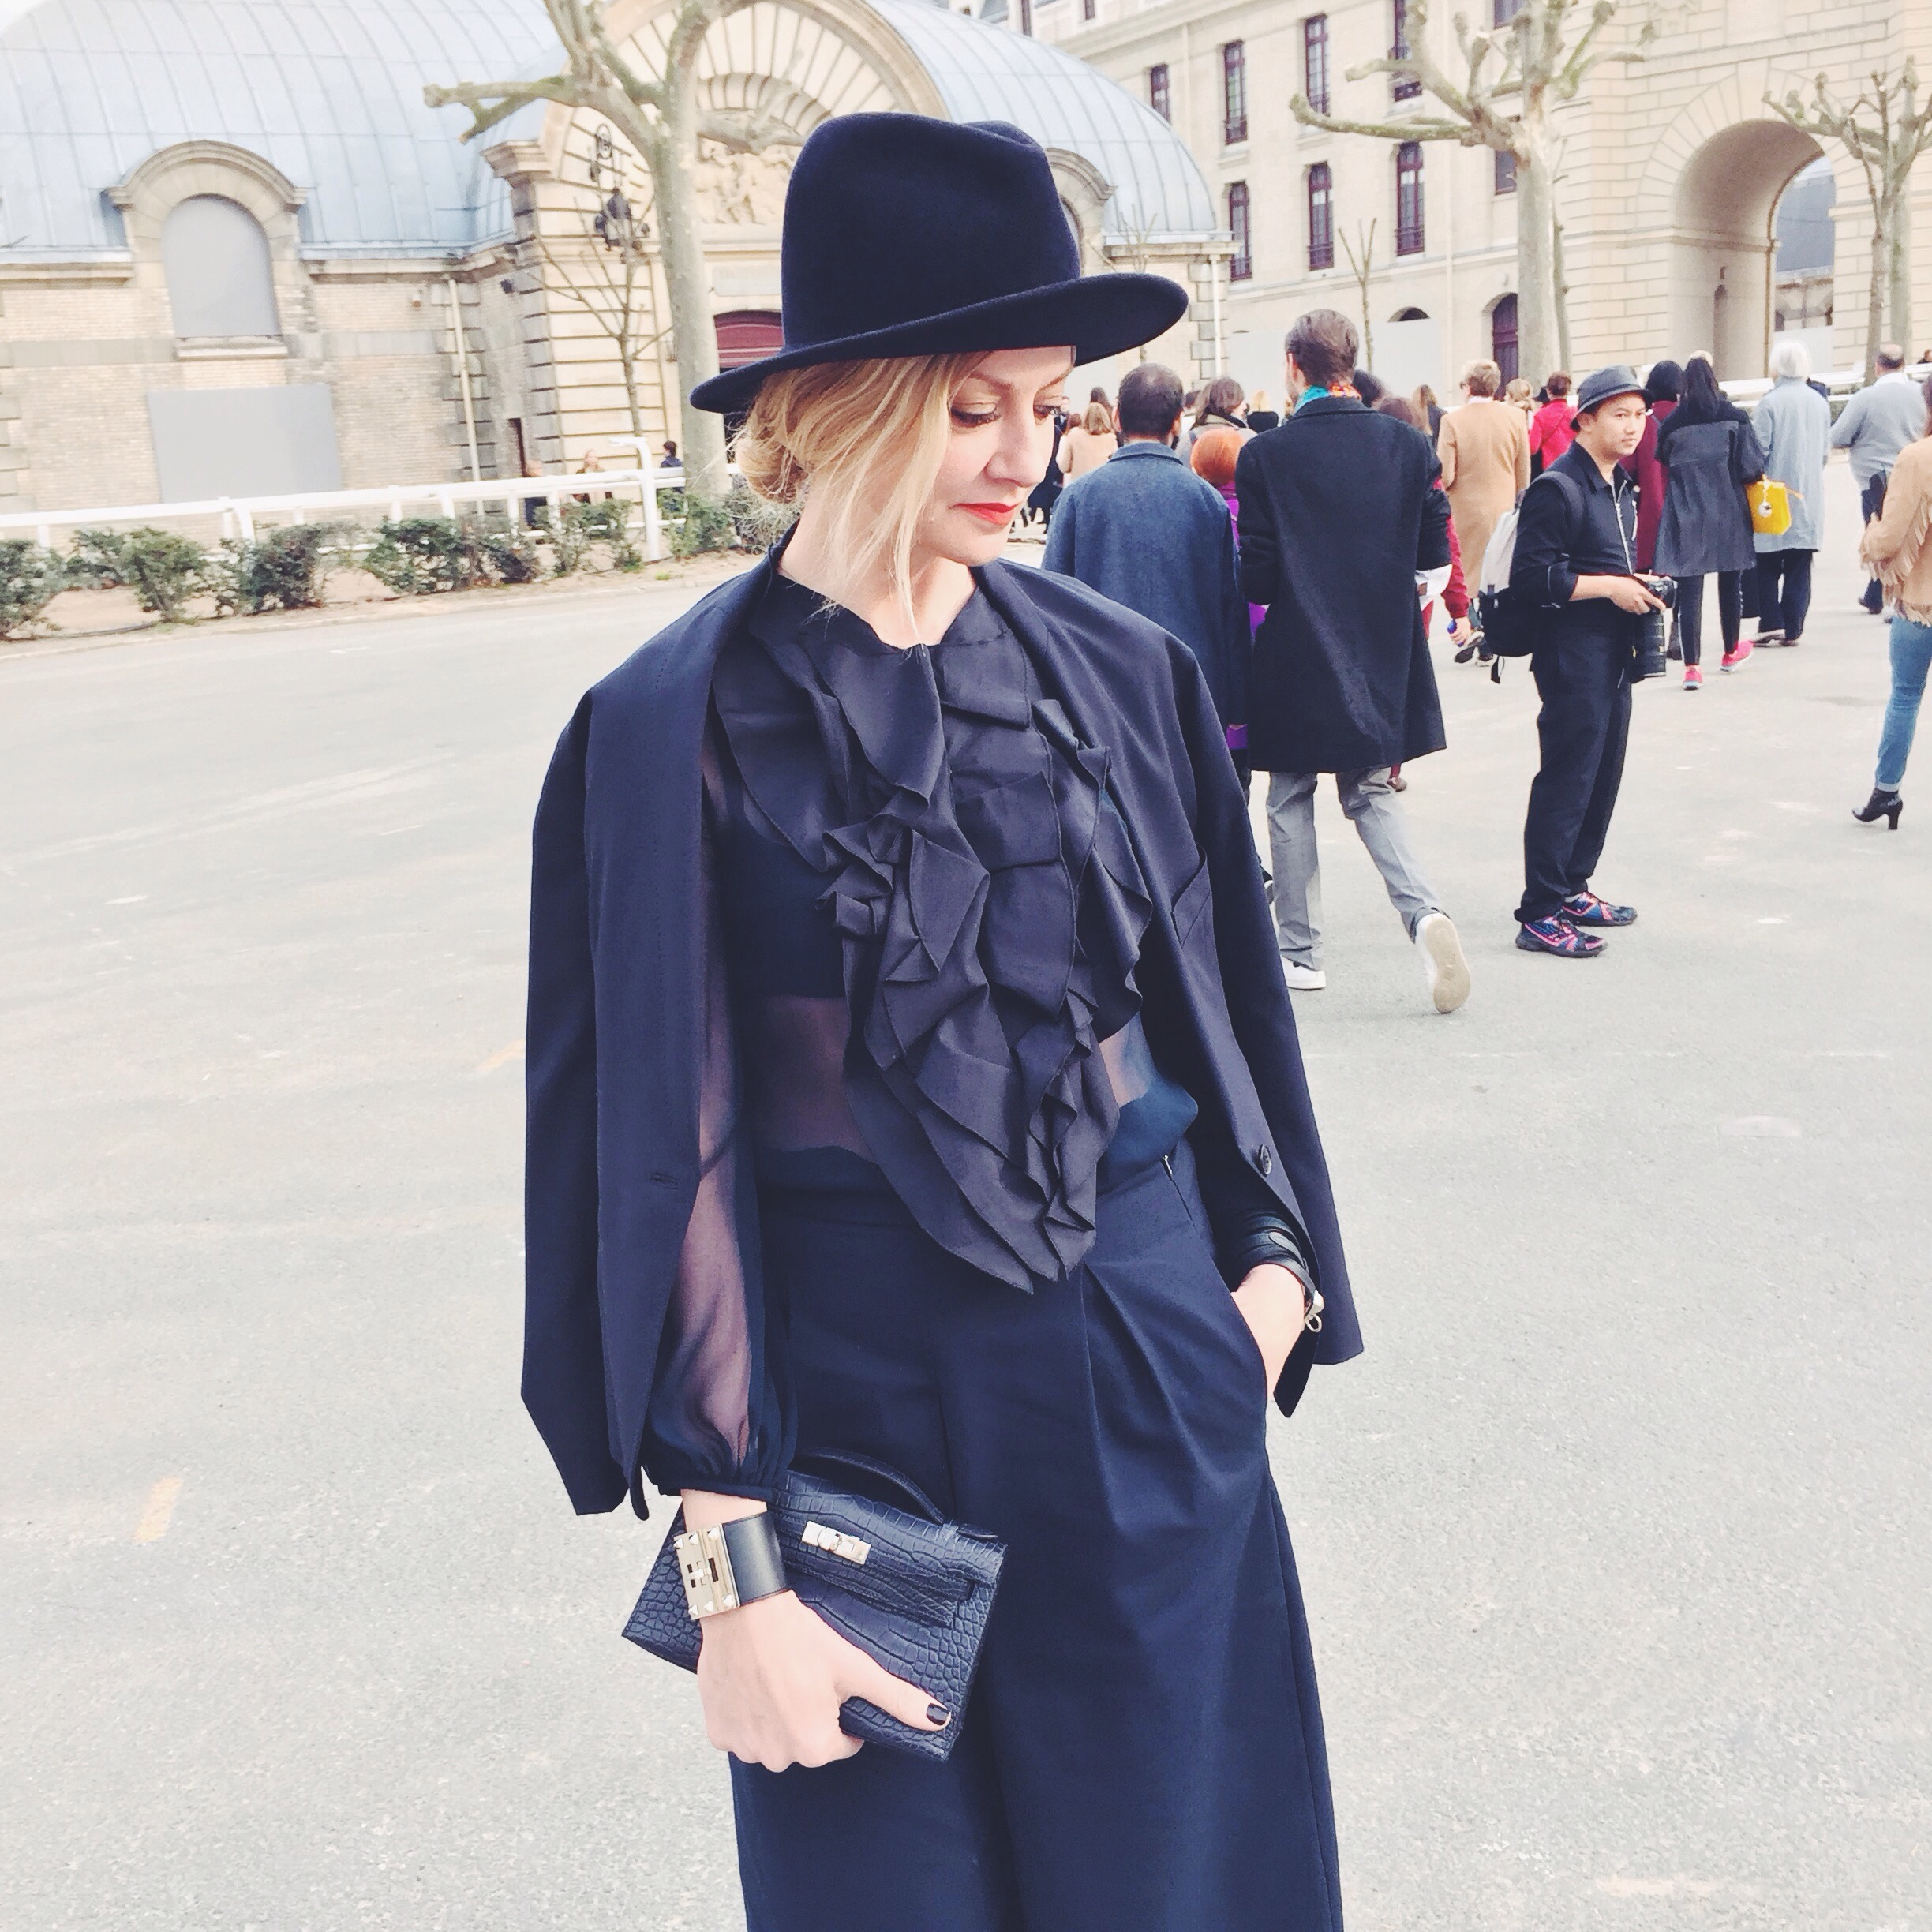 Vt Lead Stylist Lisa Marie Mccomb Shares Top 5 Fashion Week Style Rules Visual Therapy